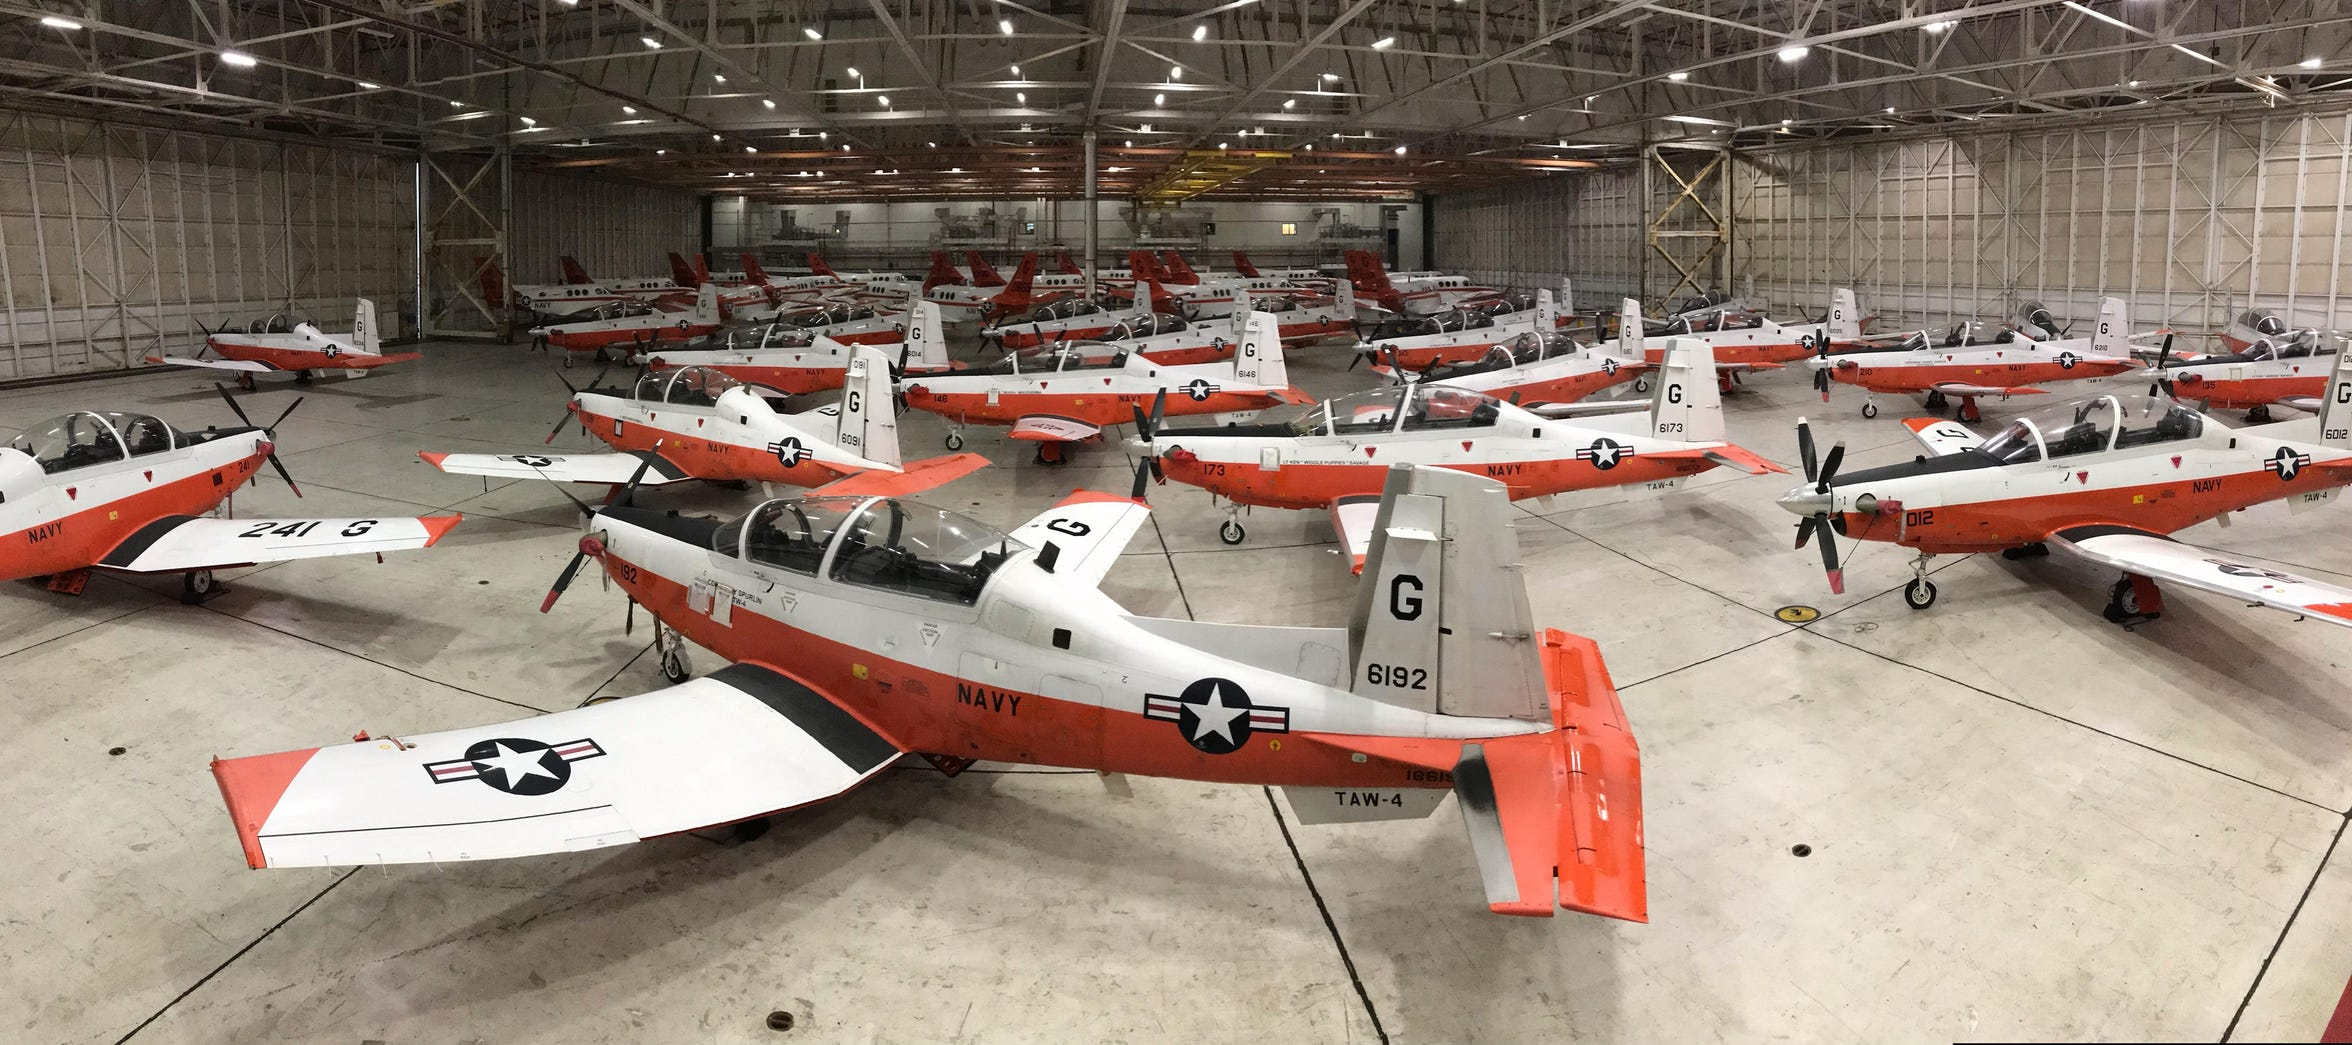 Training Air Wing 4's fleet of T-6B Texan II and T-44C Pegasus aircraft are carefully packed into a hangar to protect them from severe weather at Naval Air Station Corpus Christi, Texas, May 10. A crew worked through the night to ensure the aircraft were properly secured ahead of the storm. Training Air Wing 4 trains the world's premier military pilots in the primary, intermediate, and advanced phases of multi-engine aircraft training. (U.S. Navy photo by Lt. Michelle Tucker/Released)